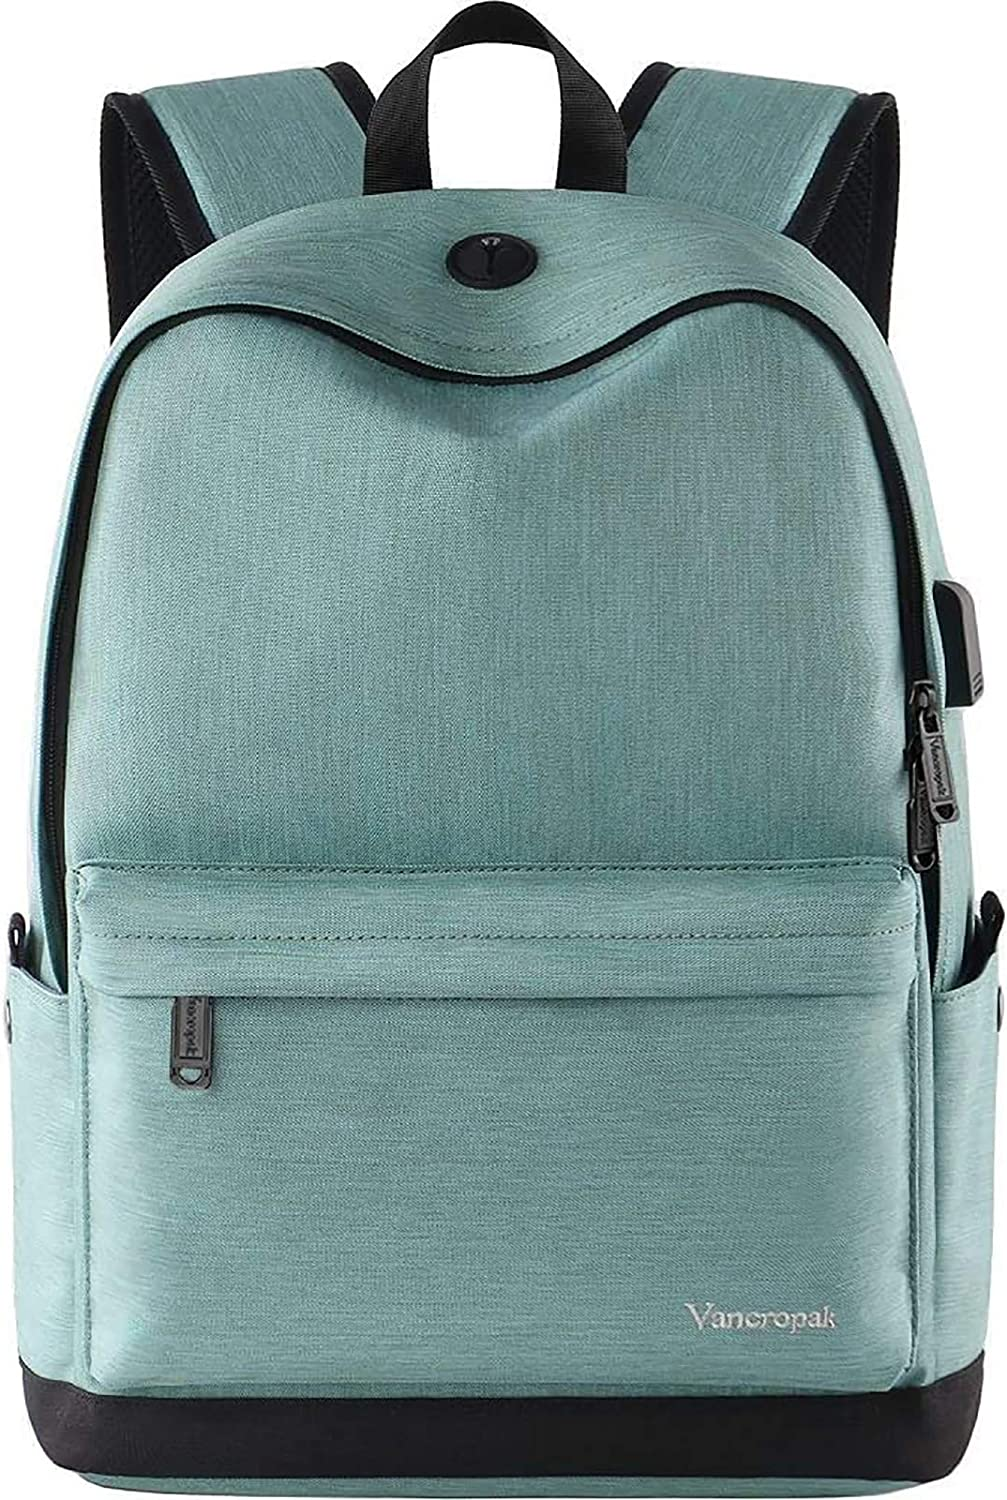 Vancropak Water Resistant Backpack for 17inch Laptop,College School Bookbag for Teen Girls Back Pack with USB Charging Port,Canvas Backpack for Women Storage Notebook Daypack for High School Students